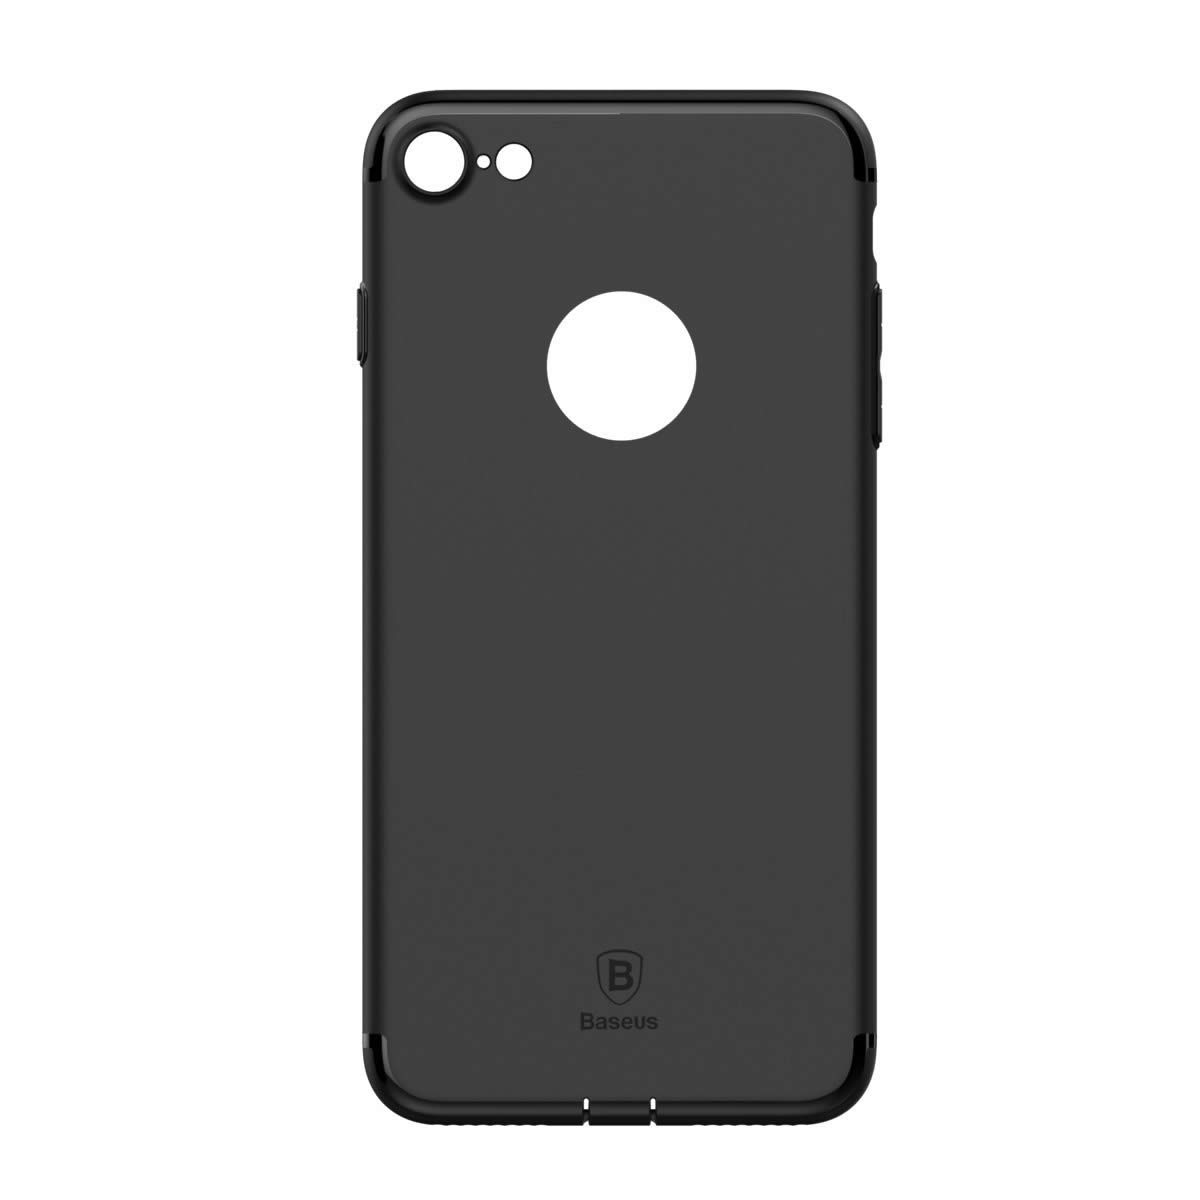 Capa iPhone 7 Baseus Ultra Fina Simple Series - Preta Sólida